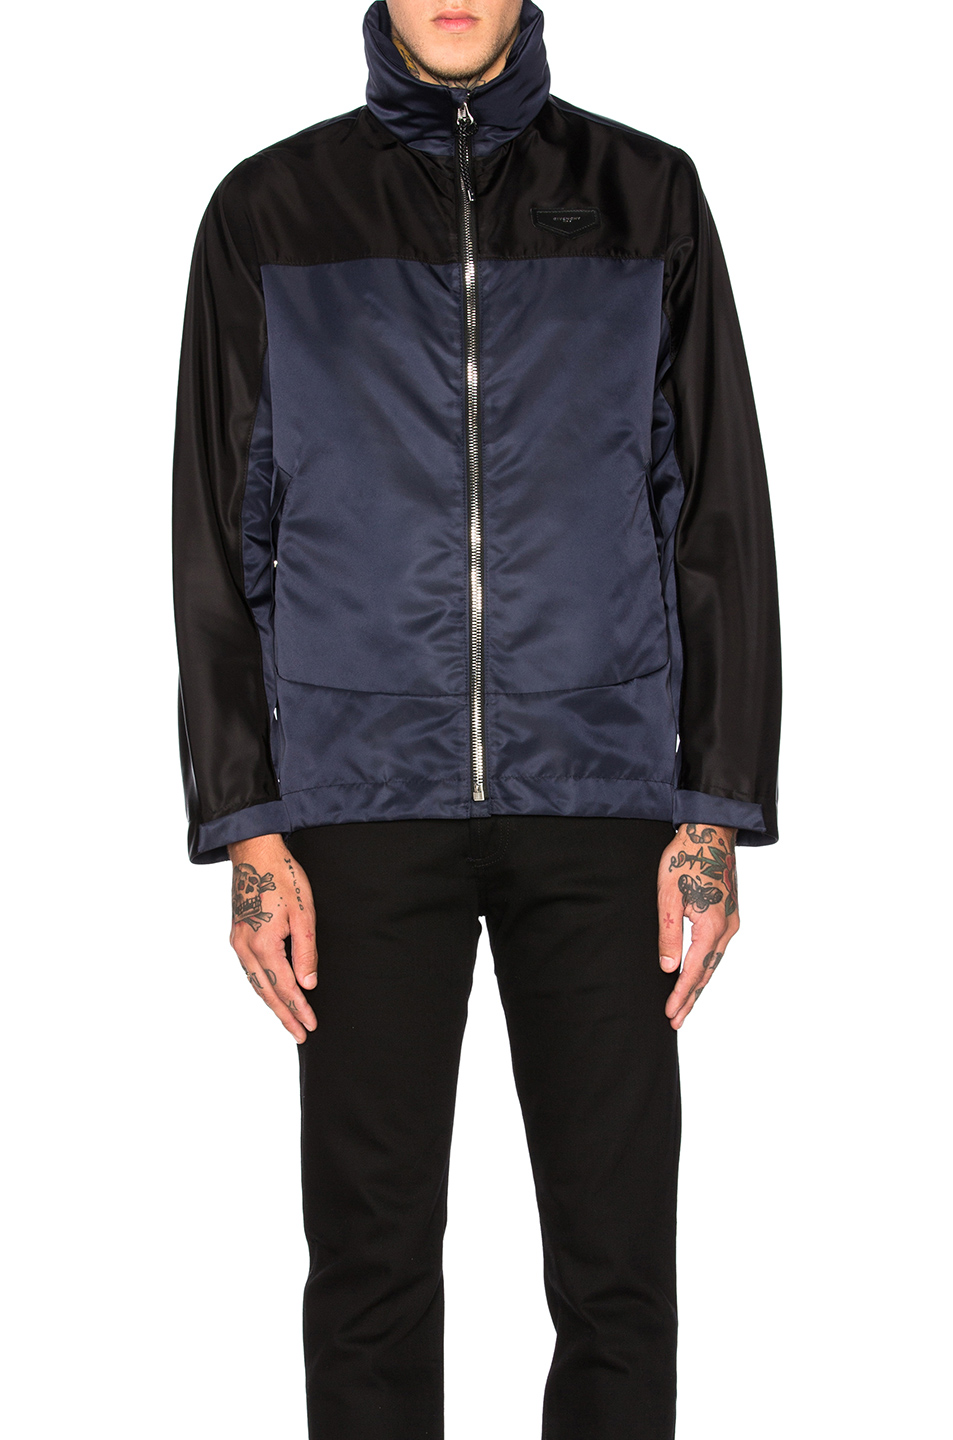 Givenchy Windbreaker in Black,Blue